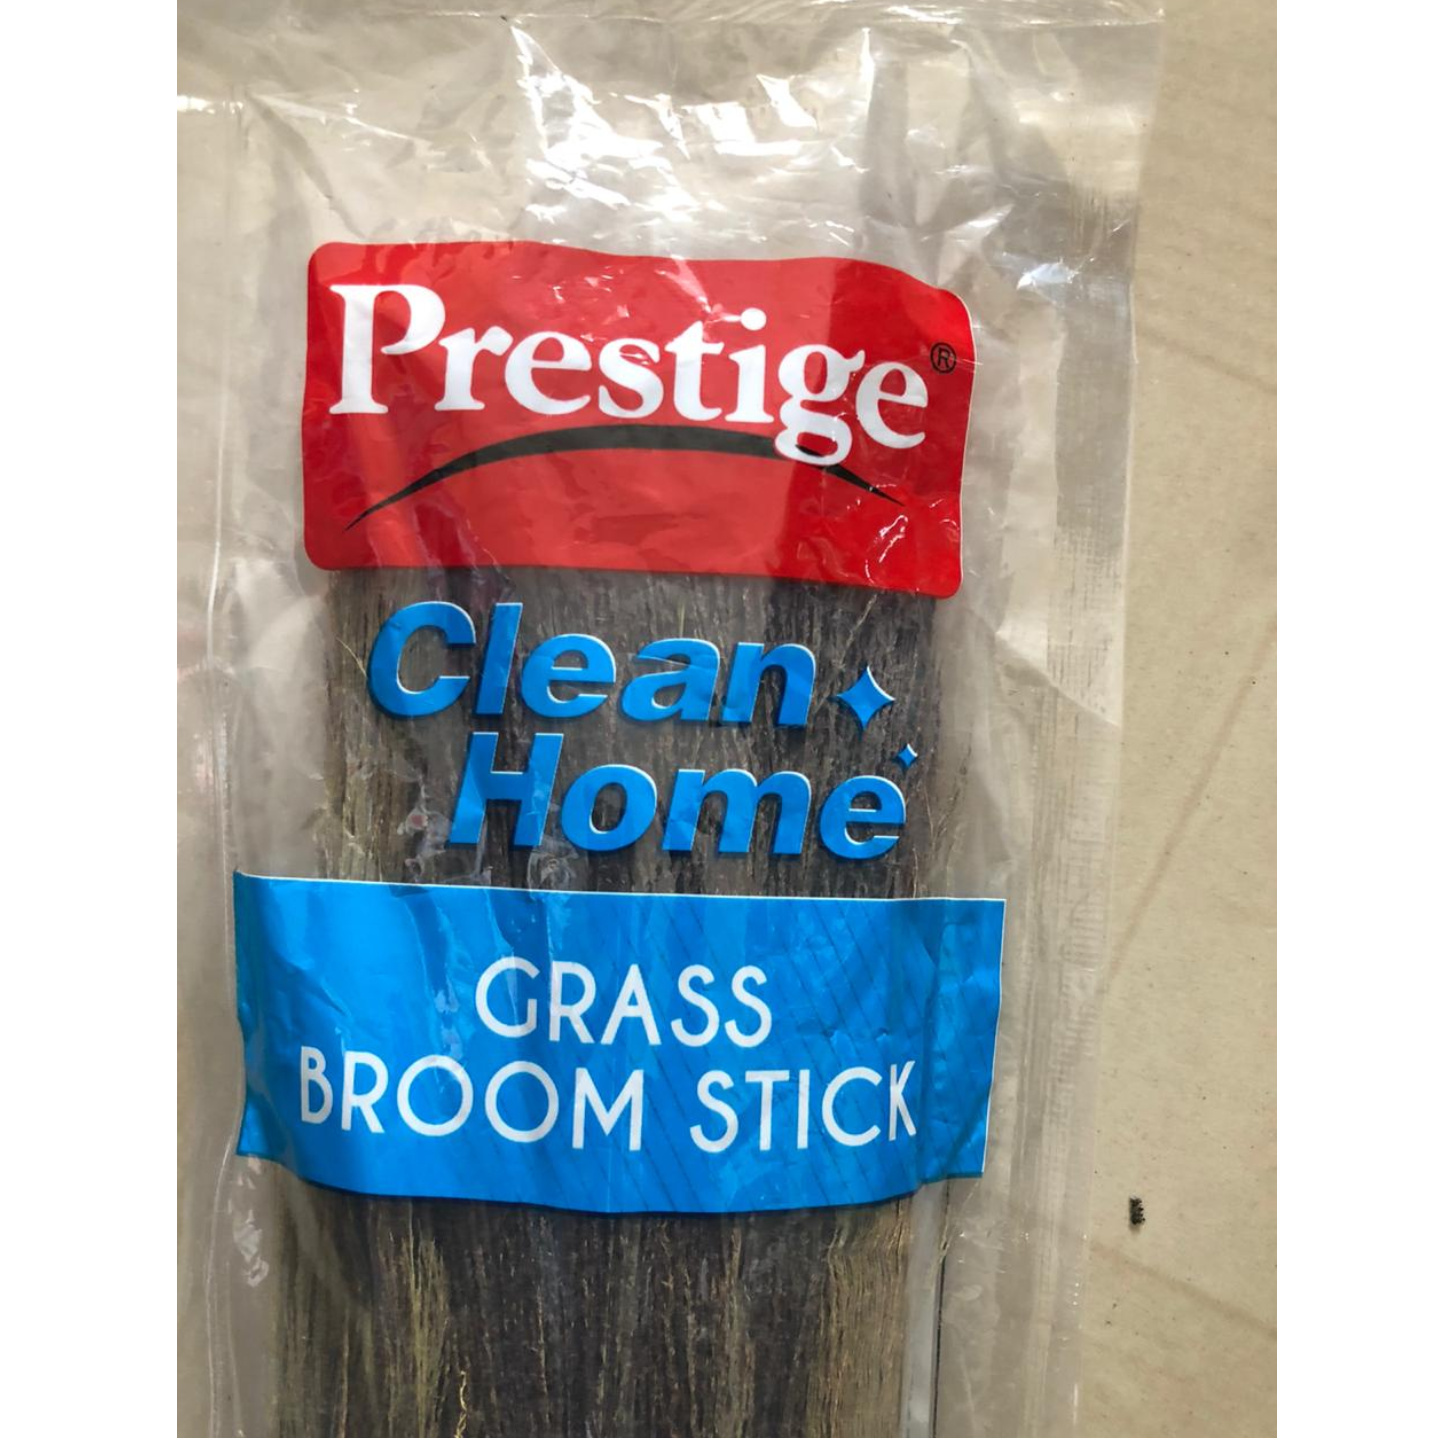 TTK Prestige Clean Home - Grass broom Pack of 2